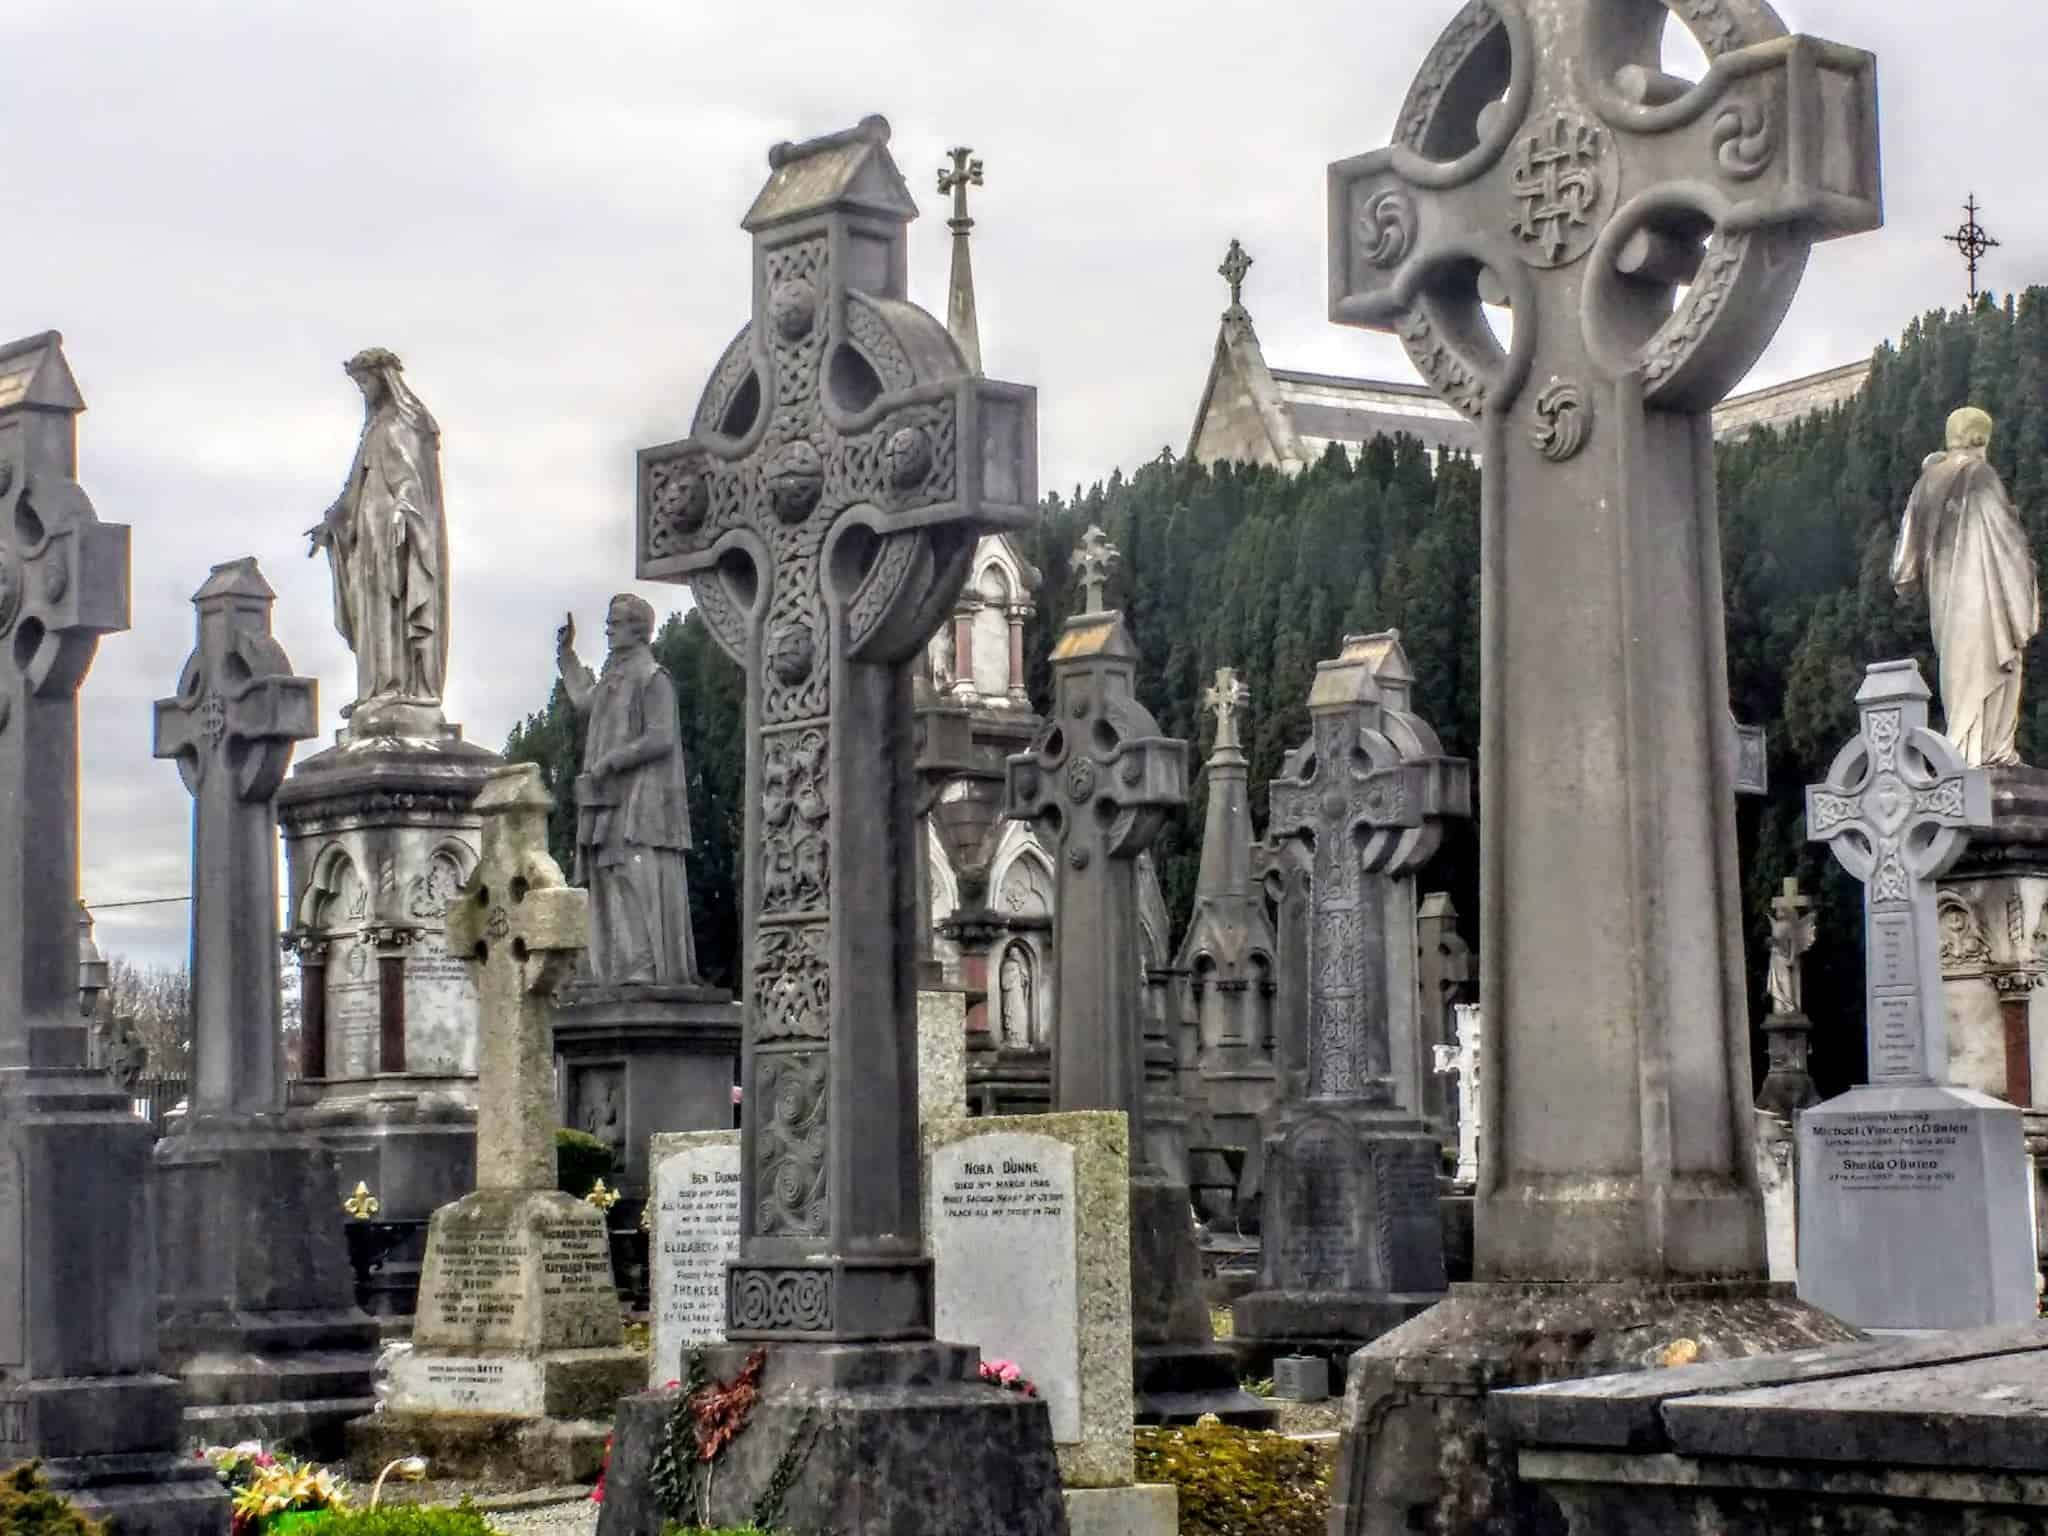 Dublin's Glasnevin Cemetery and Museumceltic crosses marking the graves